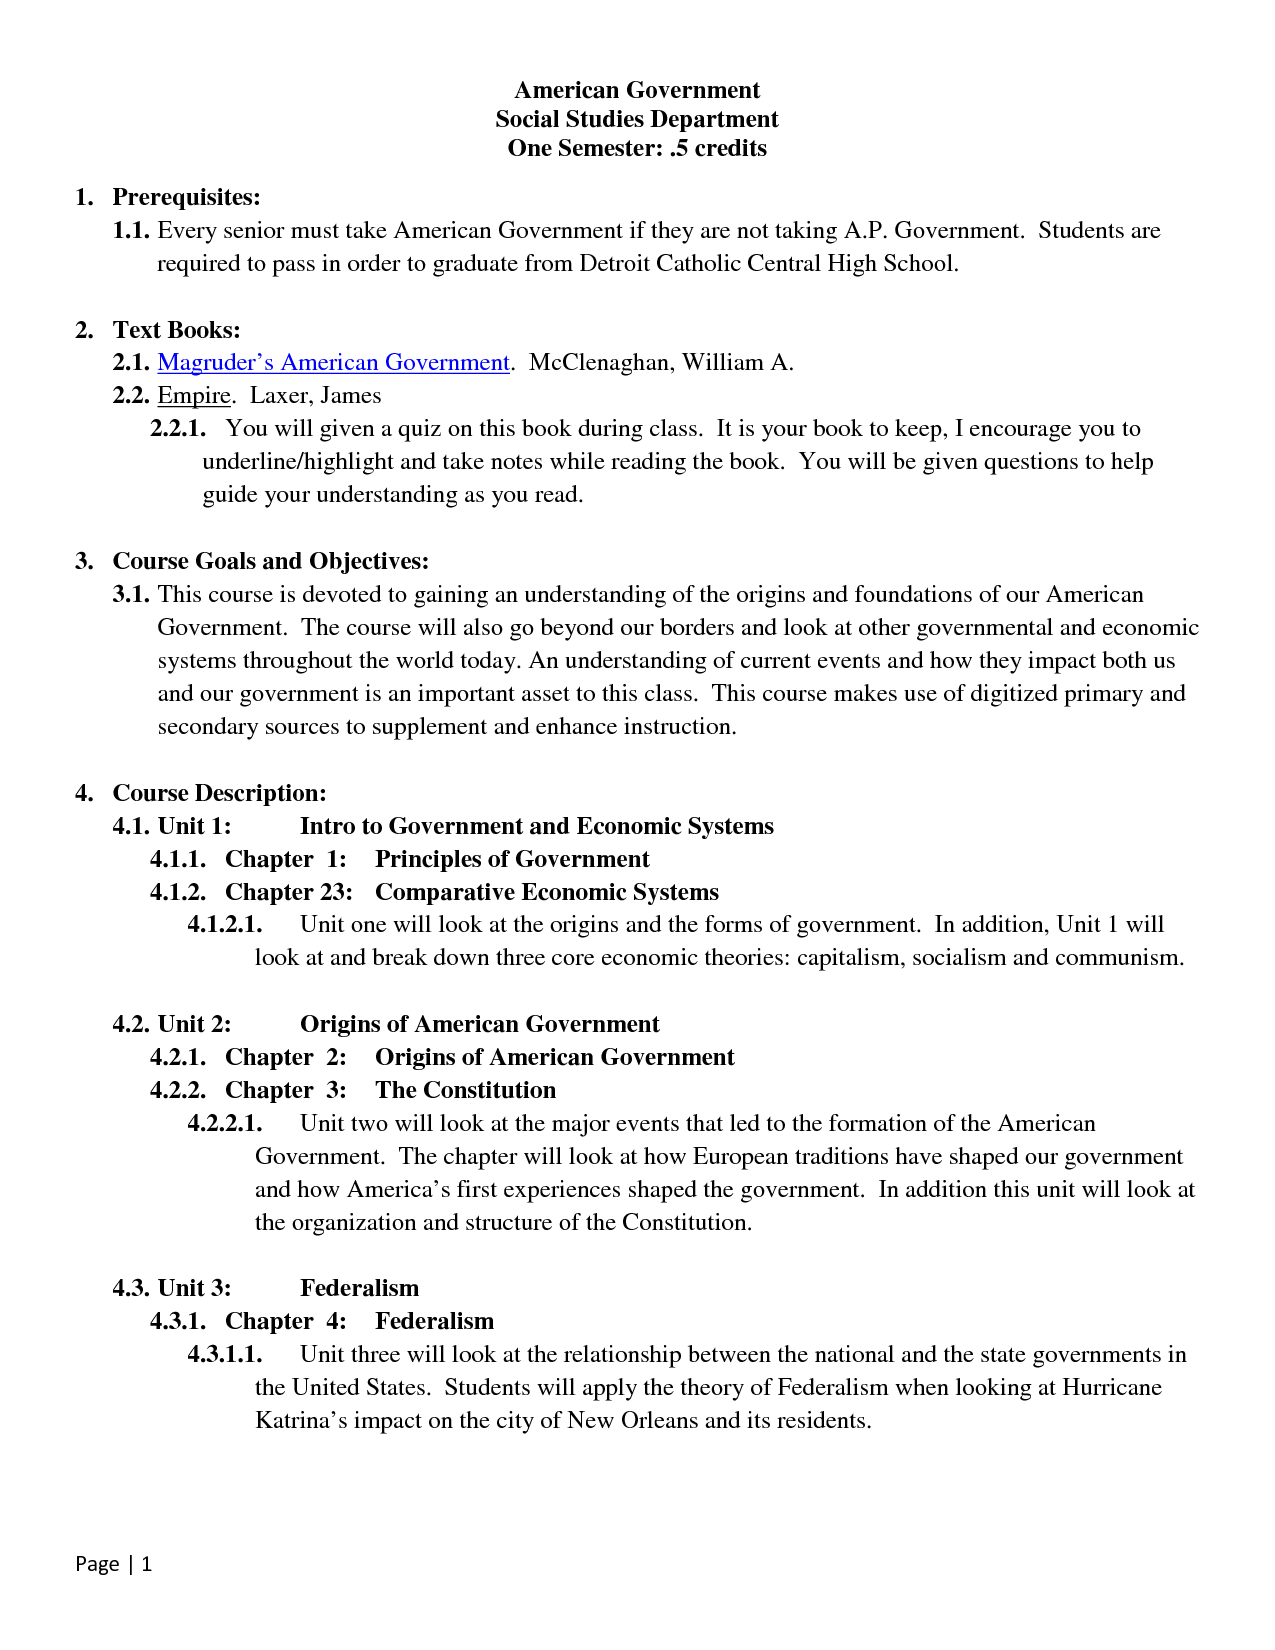 84 FREE CHAPTER 2 TEST FORM A ORIGINS OF AMERICAN GOVERNMENT ...